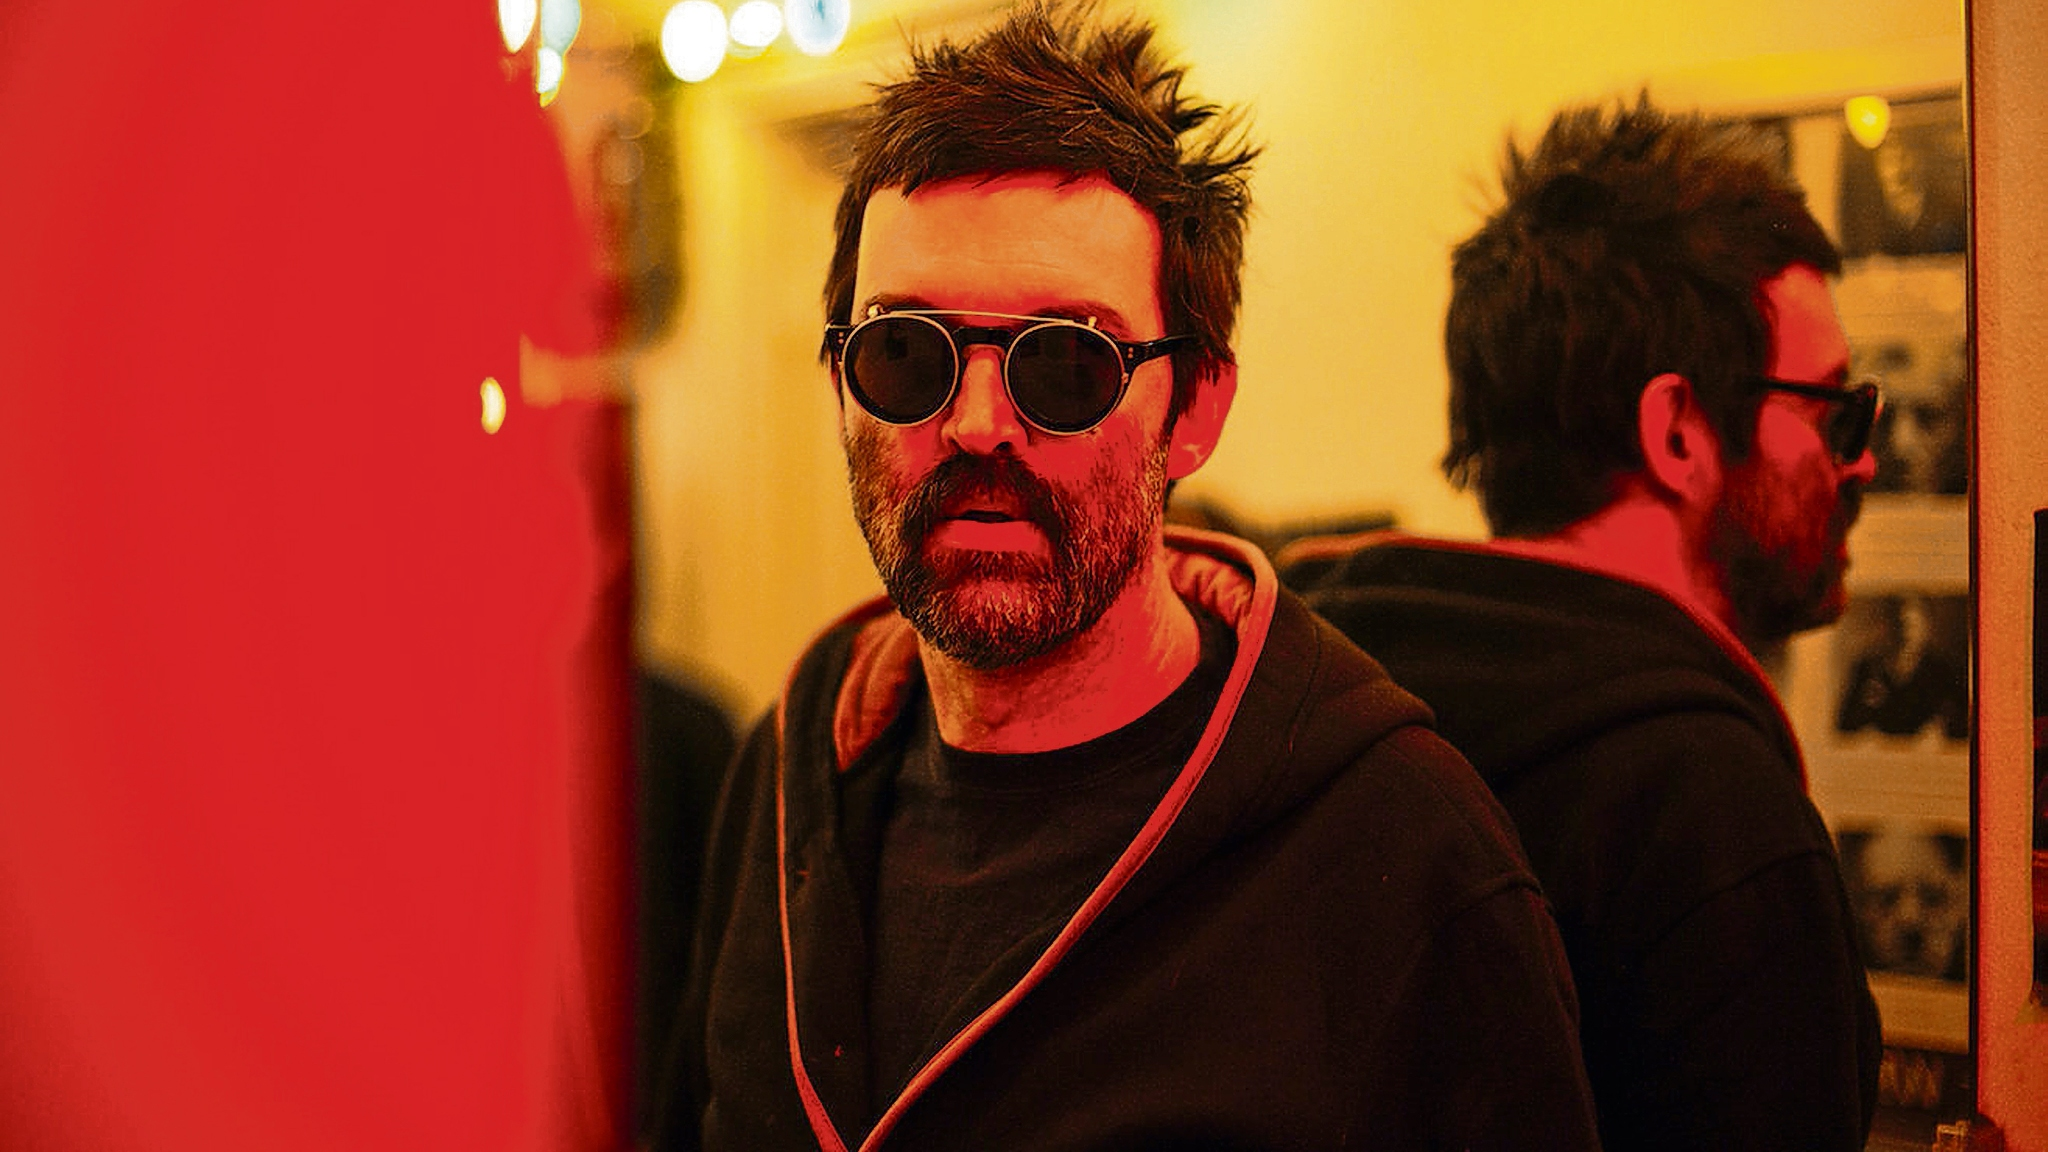 Eels Frontman Mark Everett I Didn T Ask To Be Tragic Guy Financial Times